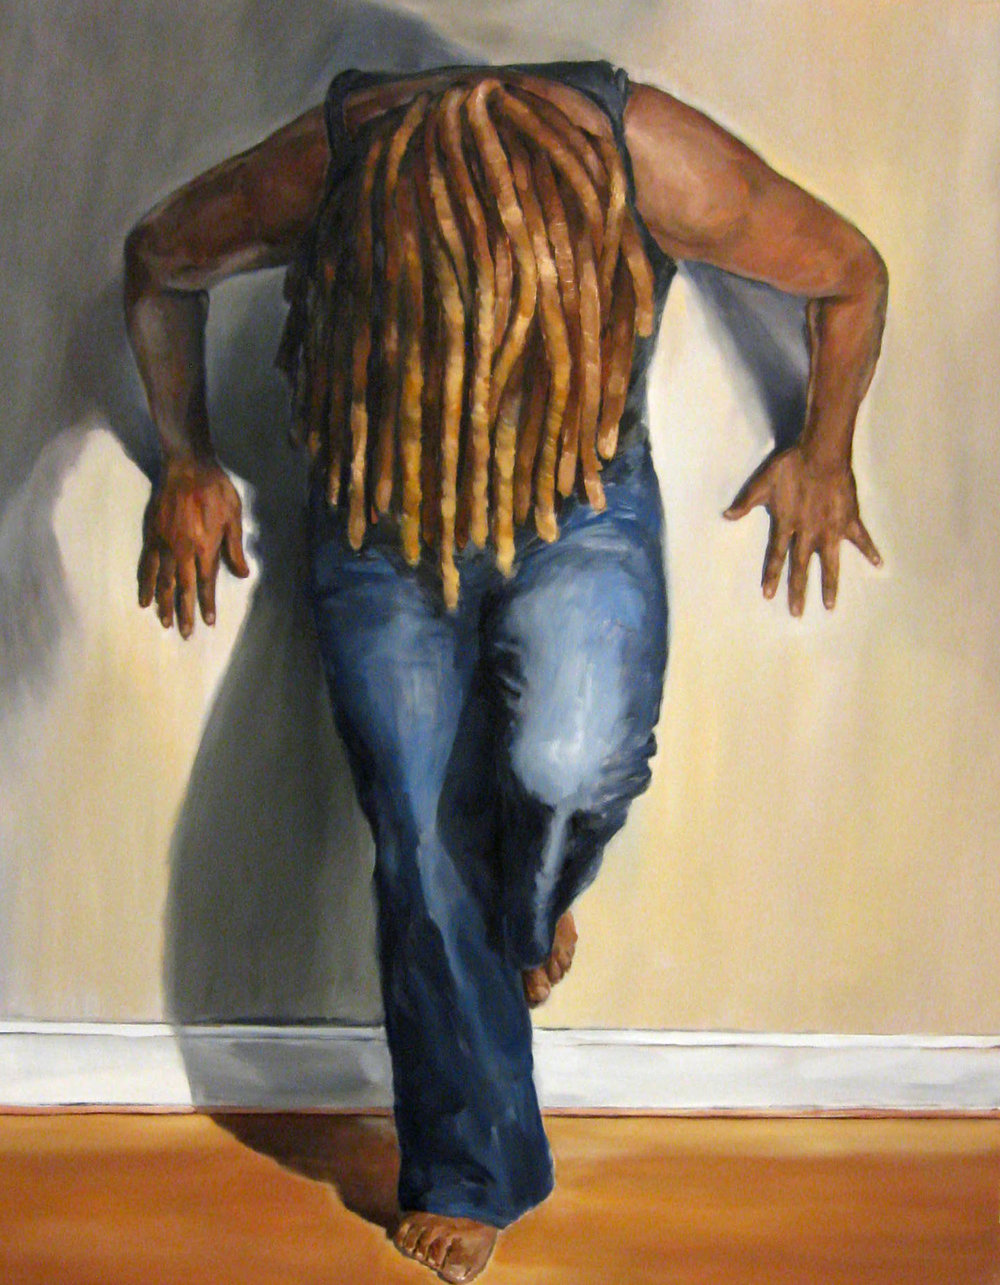 """Restrained Dreads"" by Sandra Charles, Oil on Canvas, 48x60in, 2015, $2750"